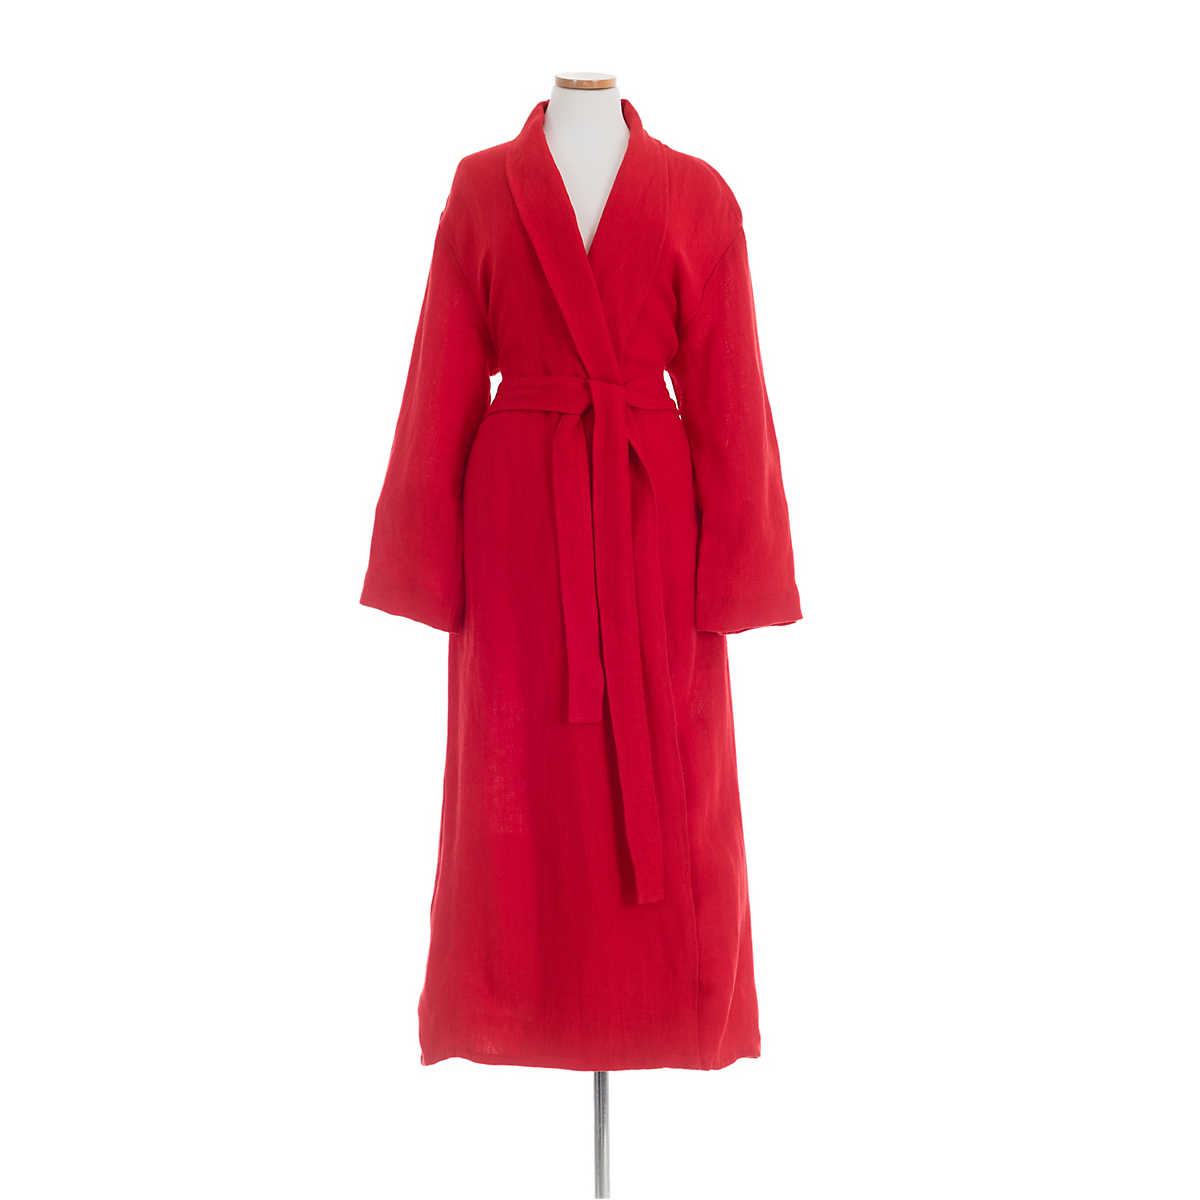 Stone Washed Linen Red Robe The Outlet